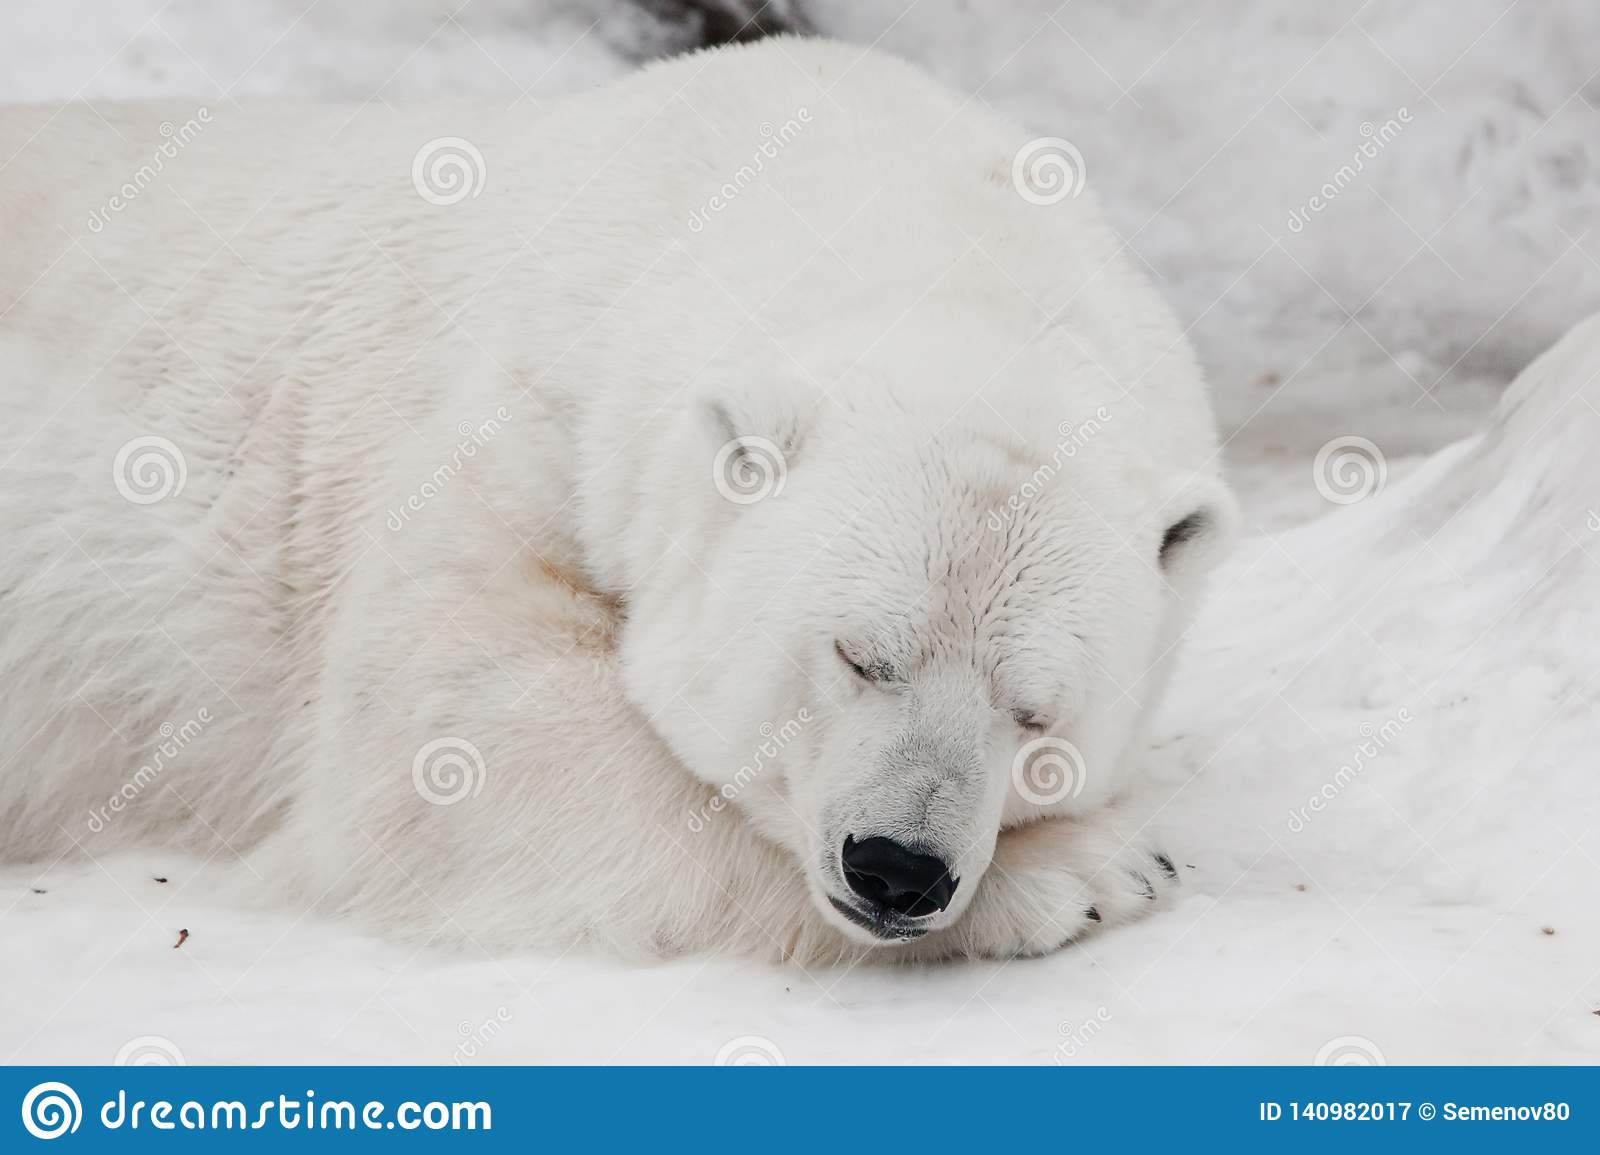 A white polar bear in a fluffy crystal-white skin lying on the snow and sleeping resting, a large predator hiding, merging